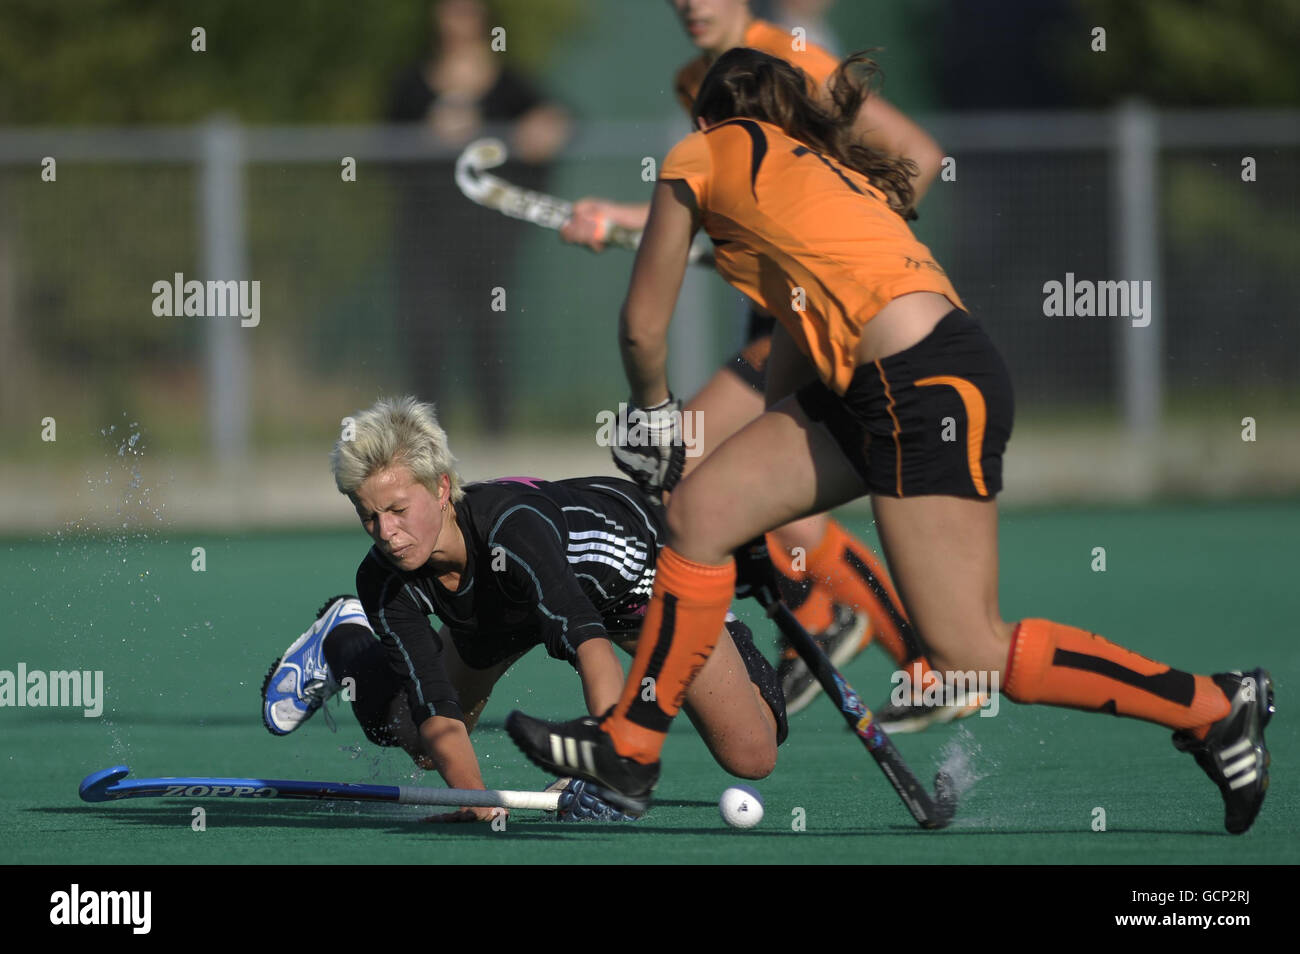 Hockey - English Premier Division - Slough v Leicester - Slough Hockey Club - Stock Image